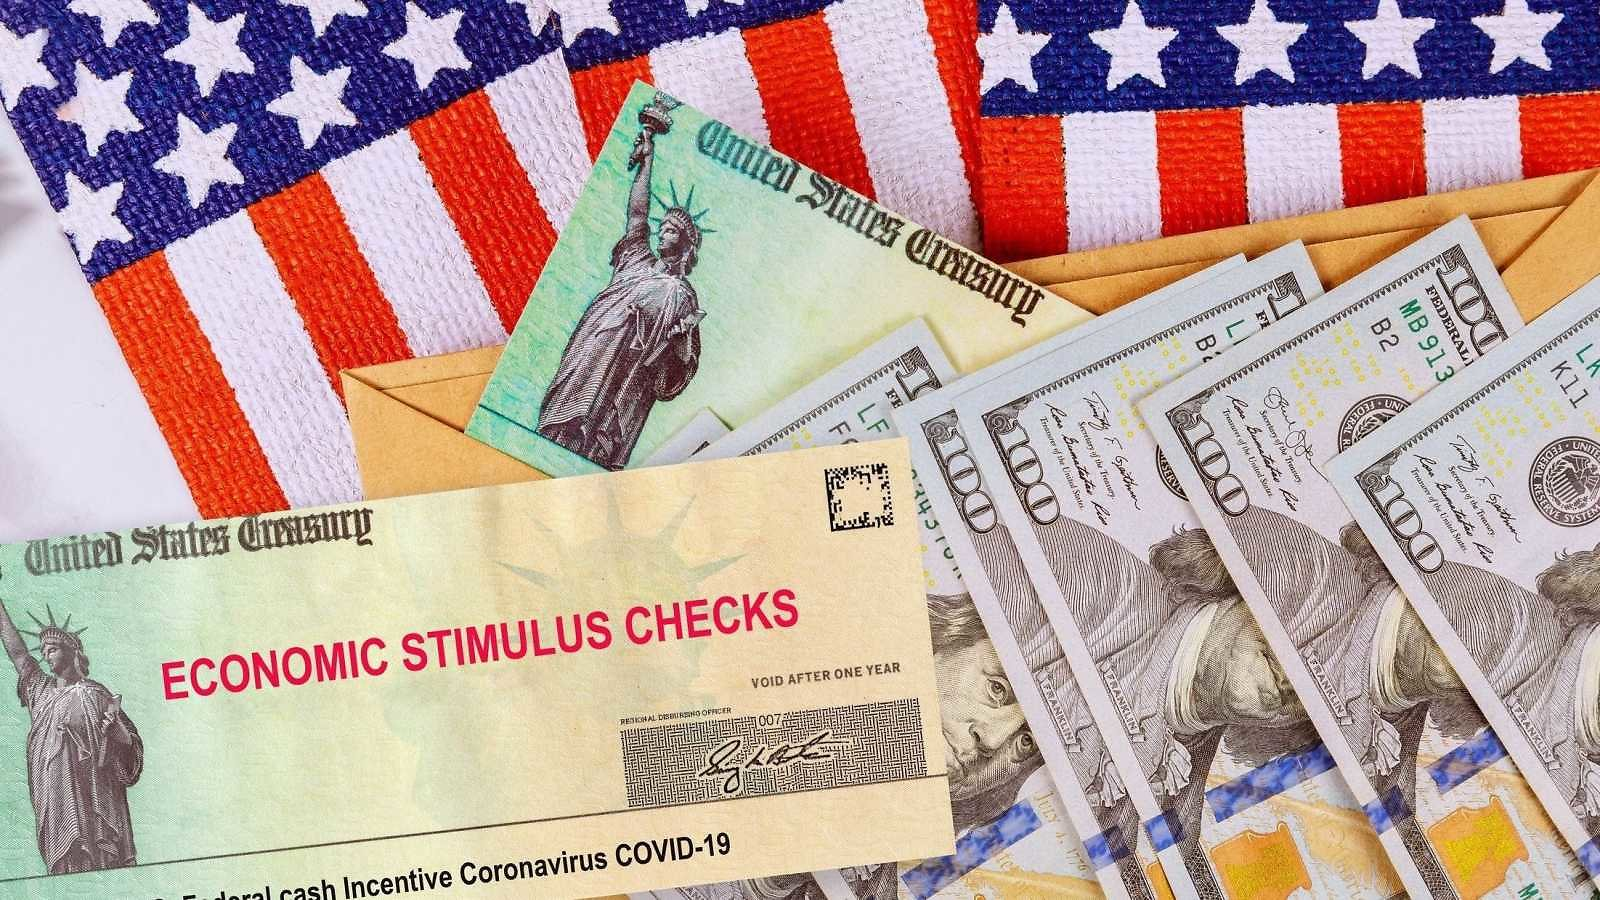 COVID-19 Relief Package: No Stimulus Checks, But It Offers An Extra $300 in Federal Unemployment Benefits